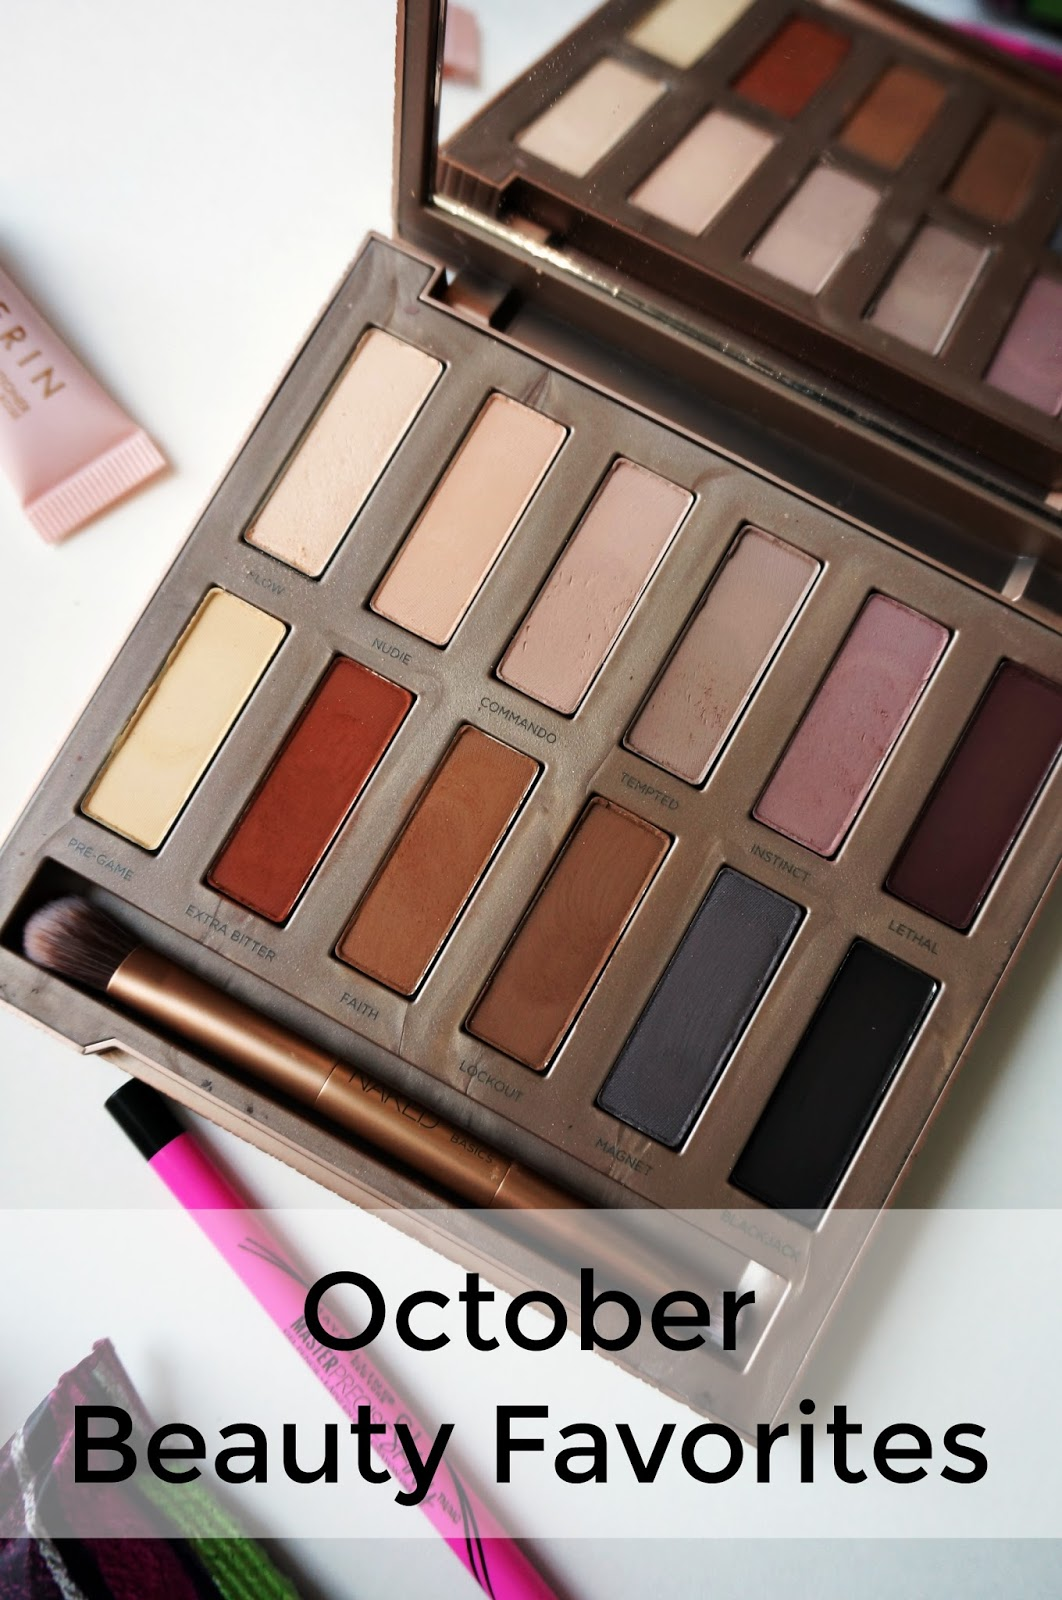 Rebecca Lately October Beauty Favorites Urban Decay Aerin Maybelline Wet 'n' Wild Bobbi Brown